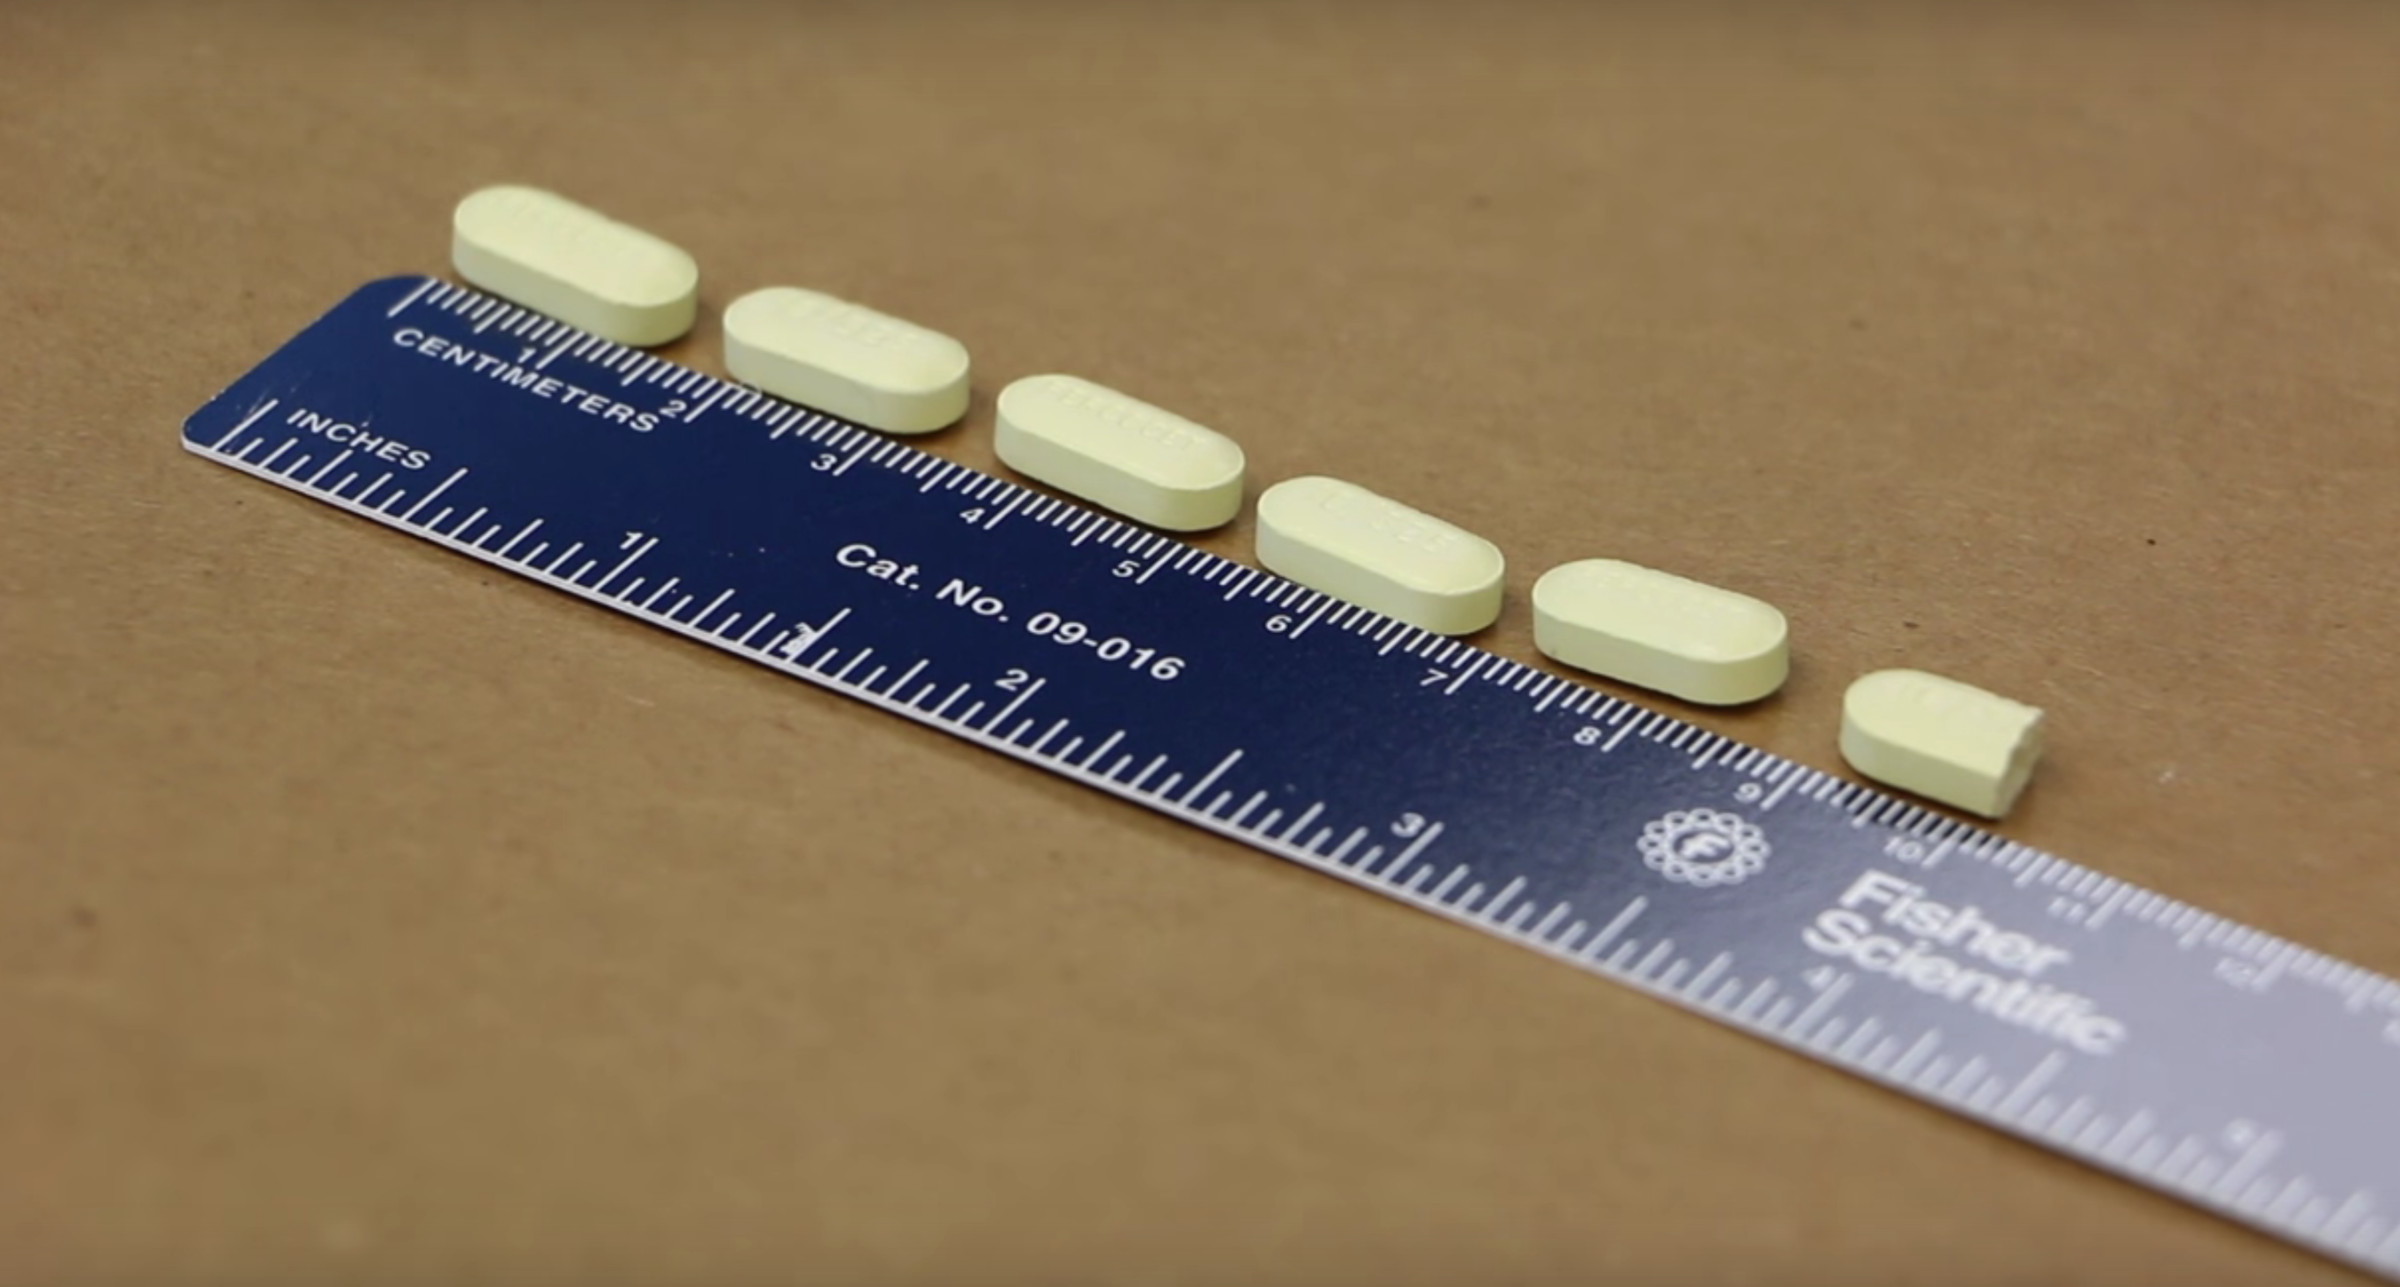 overdoses from pain pills laced with drug worry tennessee